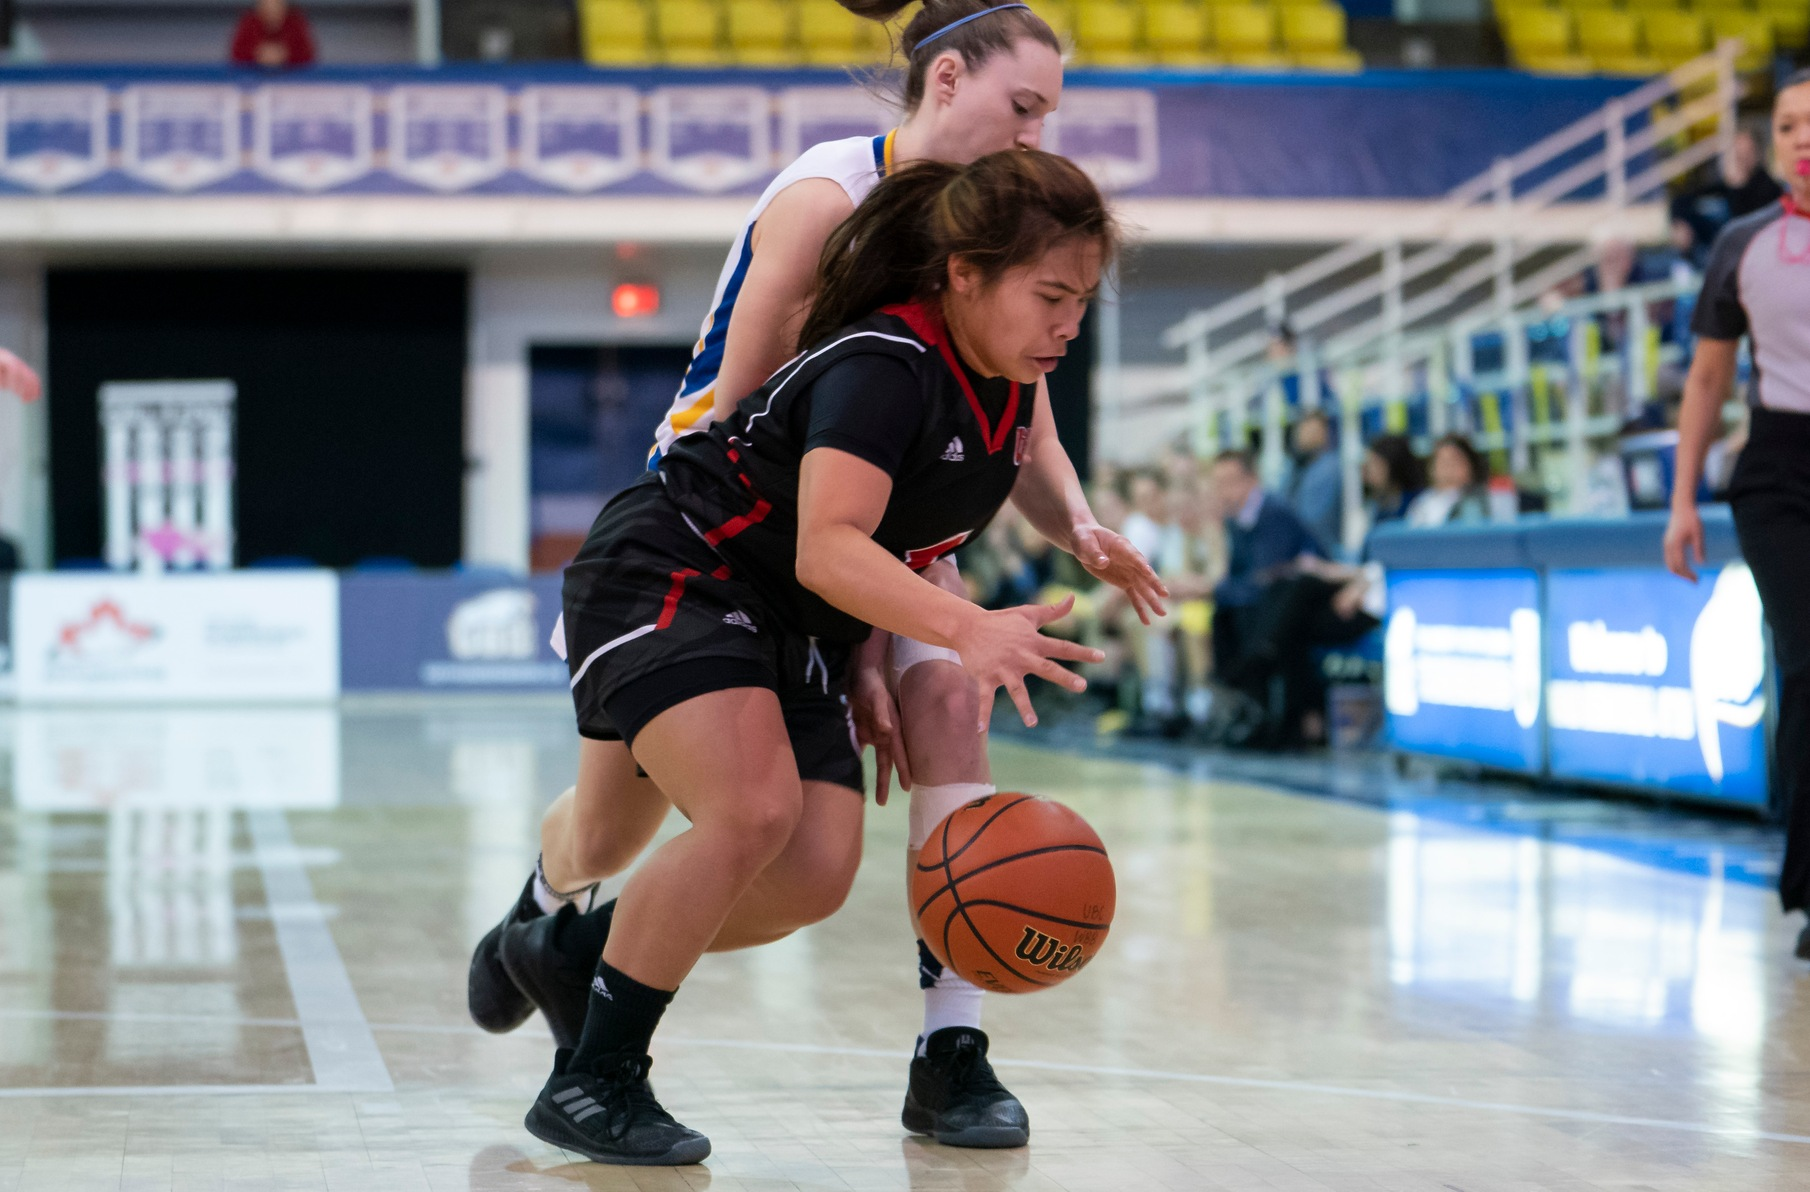 Wesmen guard Farrah Castillo dribbles against pressure during Winnipeg's 67-64 playoff victory over the UBC Thunderbirds, Saturday, February 9, 2019 in Vancouver. (Rich Lam/UBC Athletics)